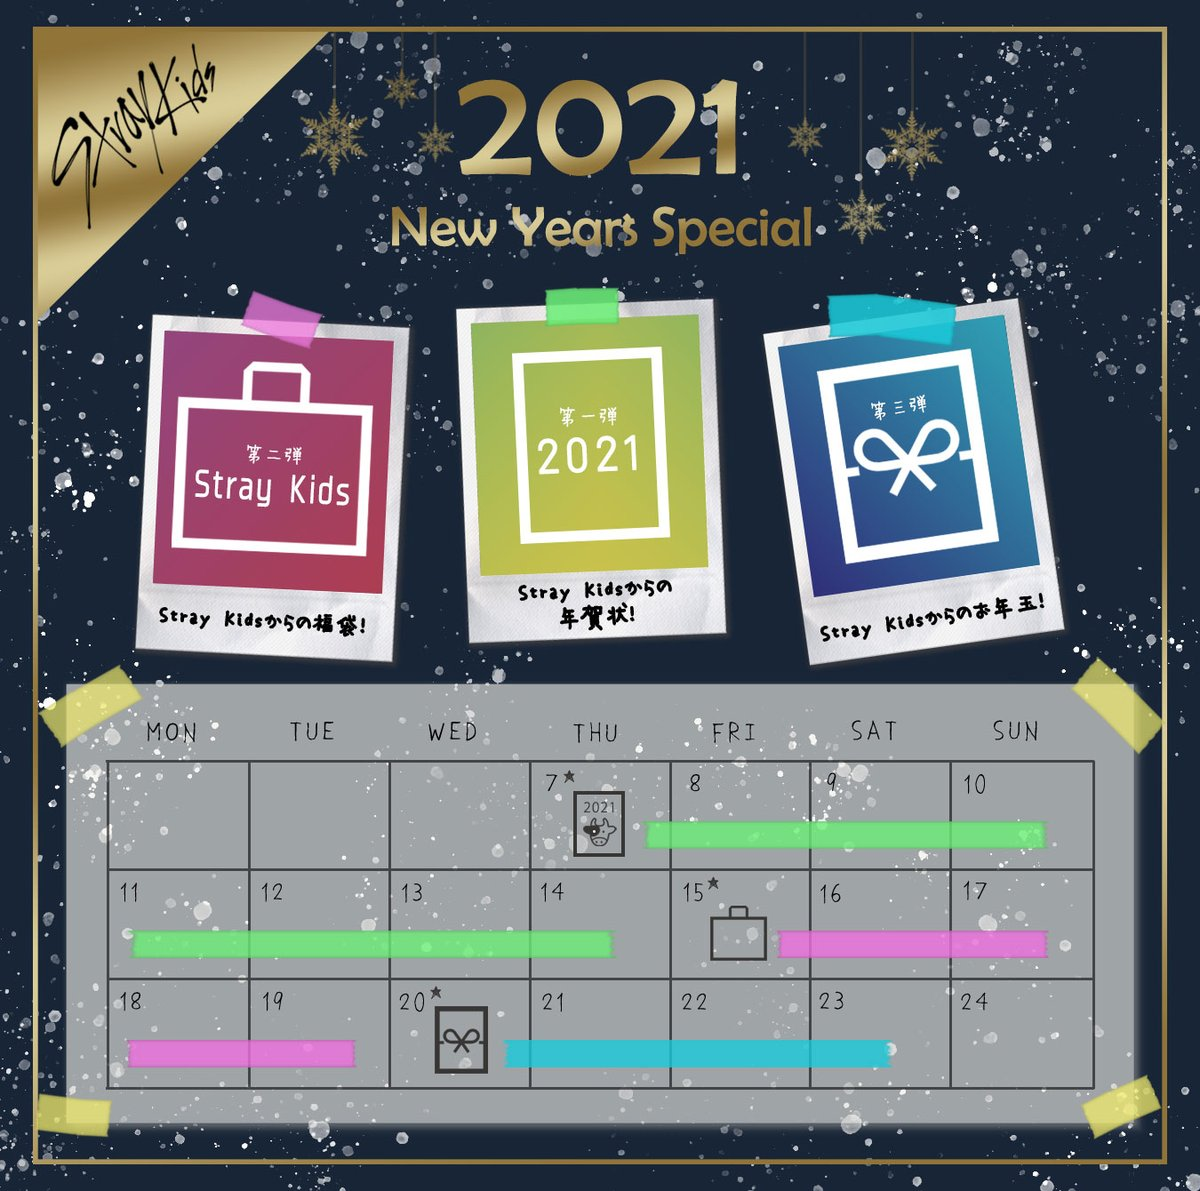 Stray Kids 2021 NEW YEAR'S SPECIAL  お楽しみに❣   #StrayKids  #スキズ